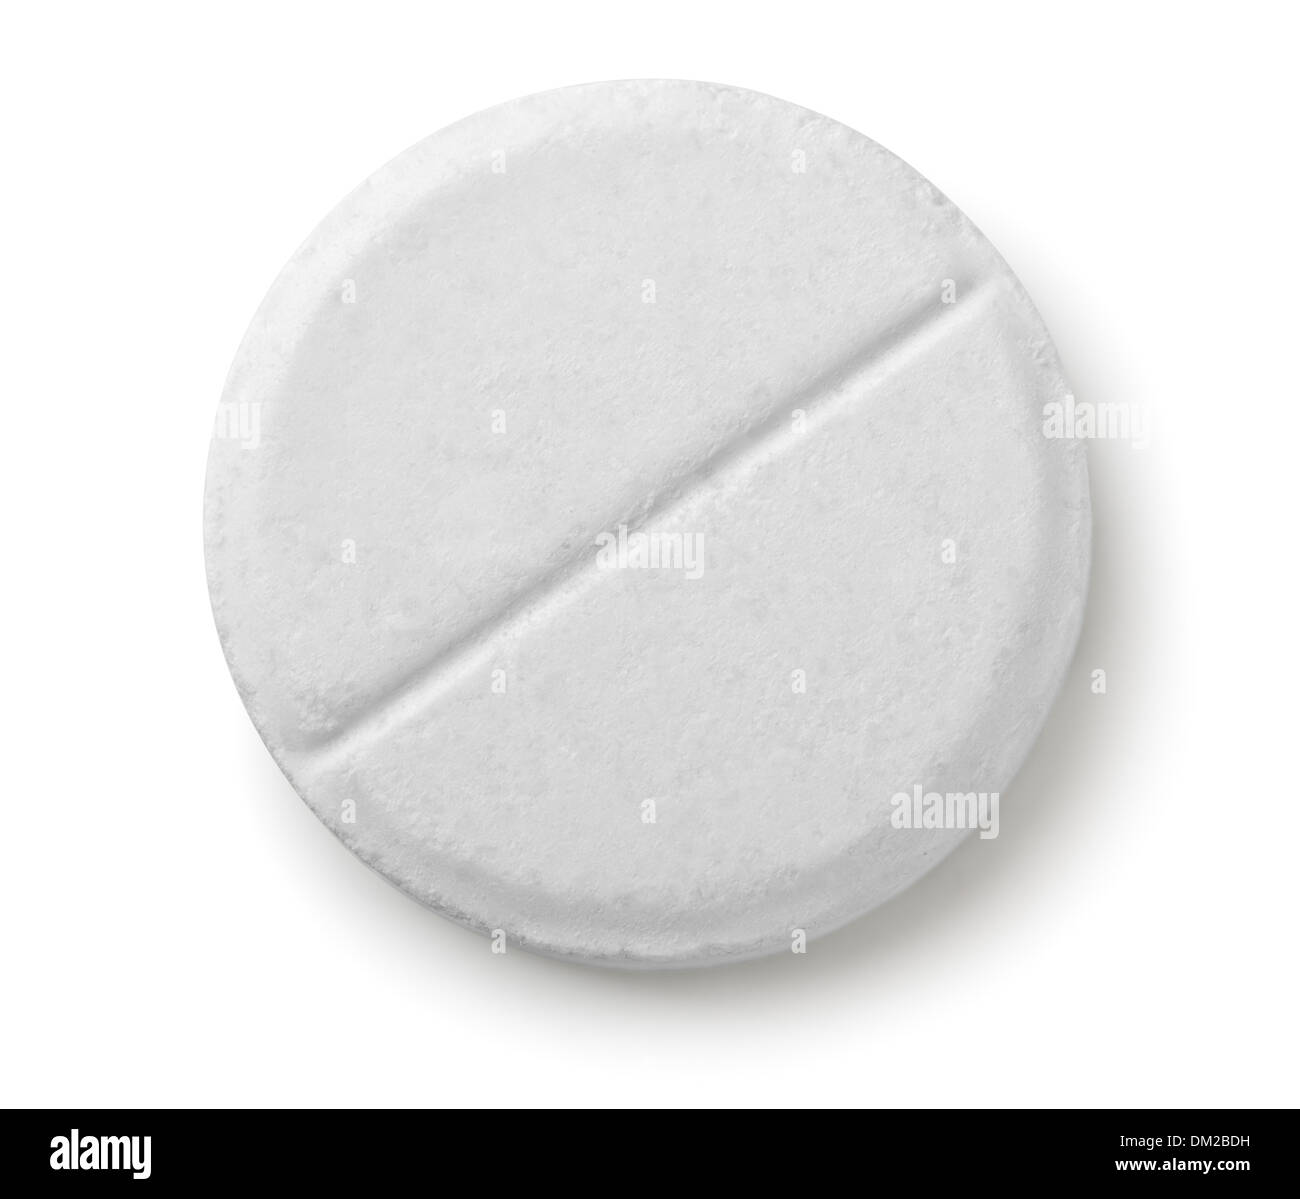 Single white pill isolated on white - Stock Image